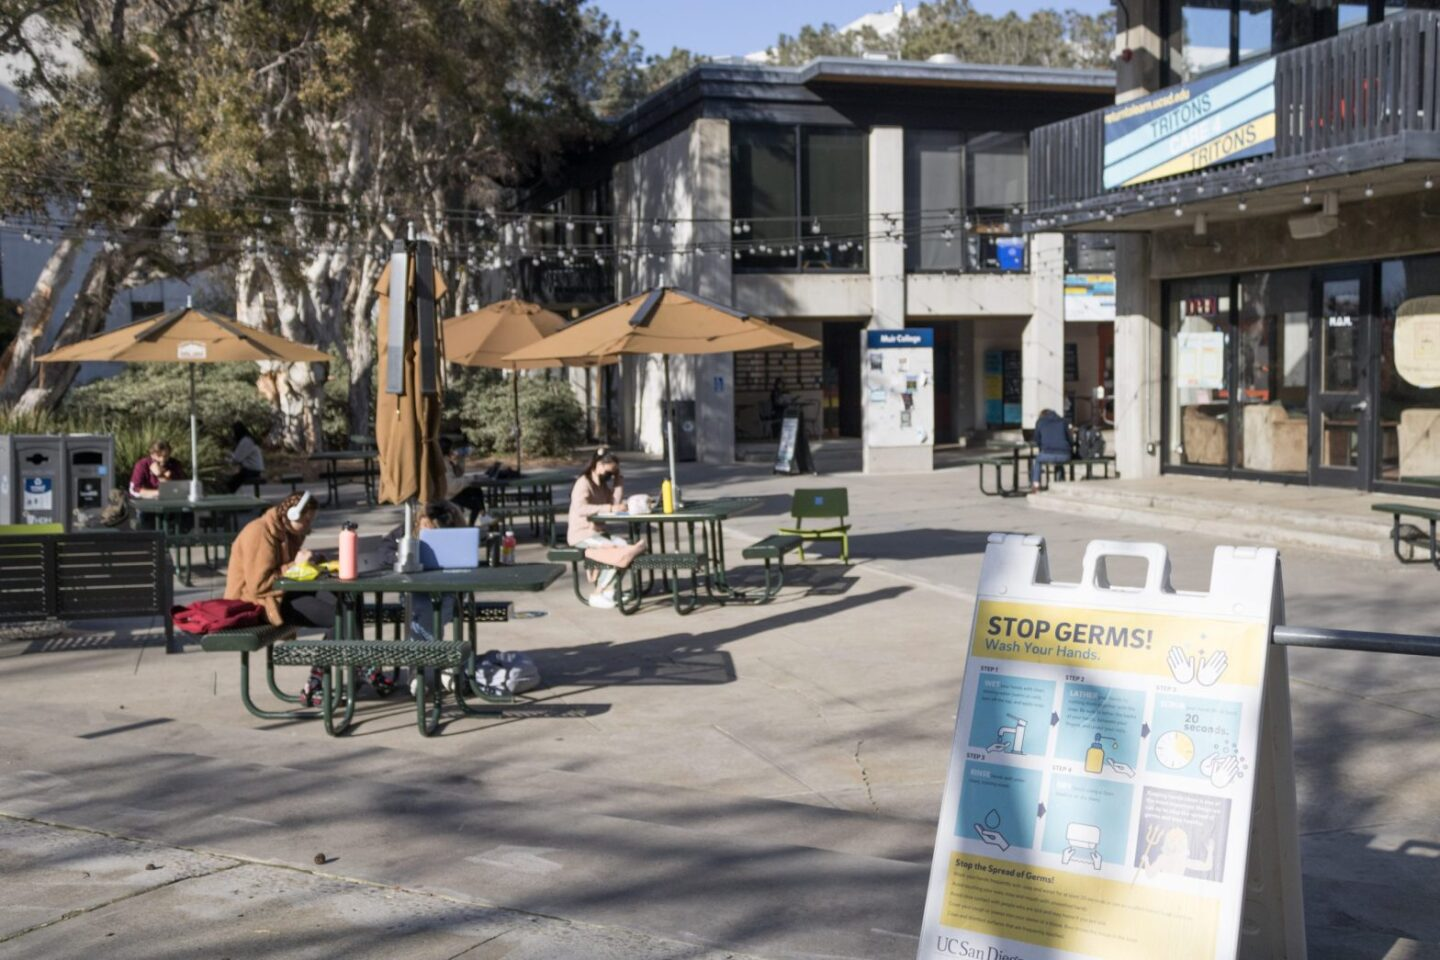 Students study outdoors in Muir Quad at UC San Diego on Feb. 17, 2021. A sign outlines the correct hand-washing procedures to fight COVID-19.